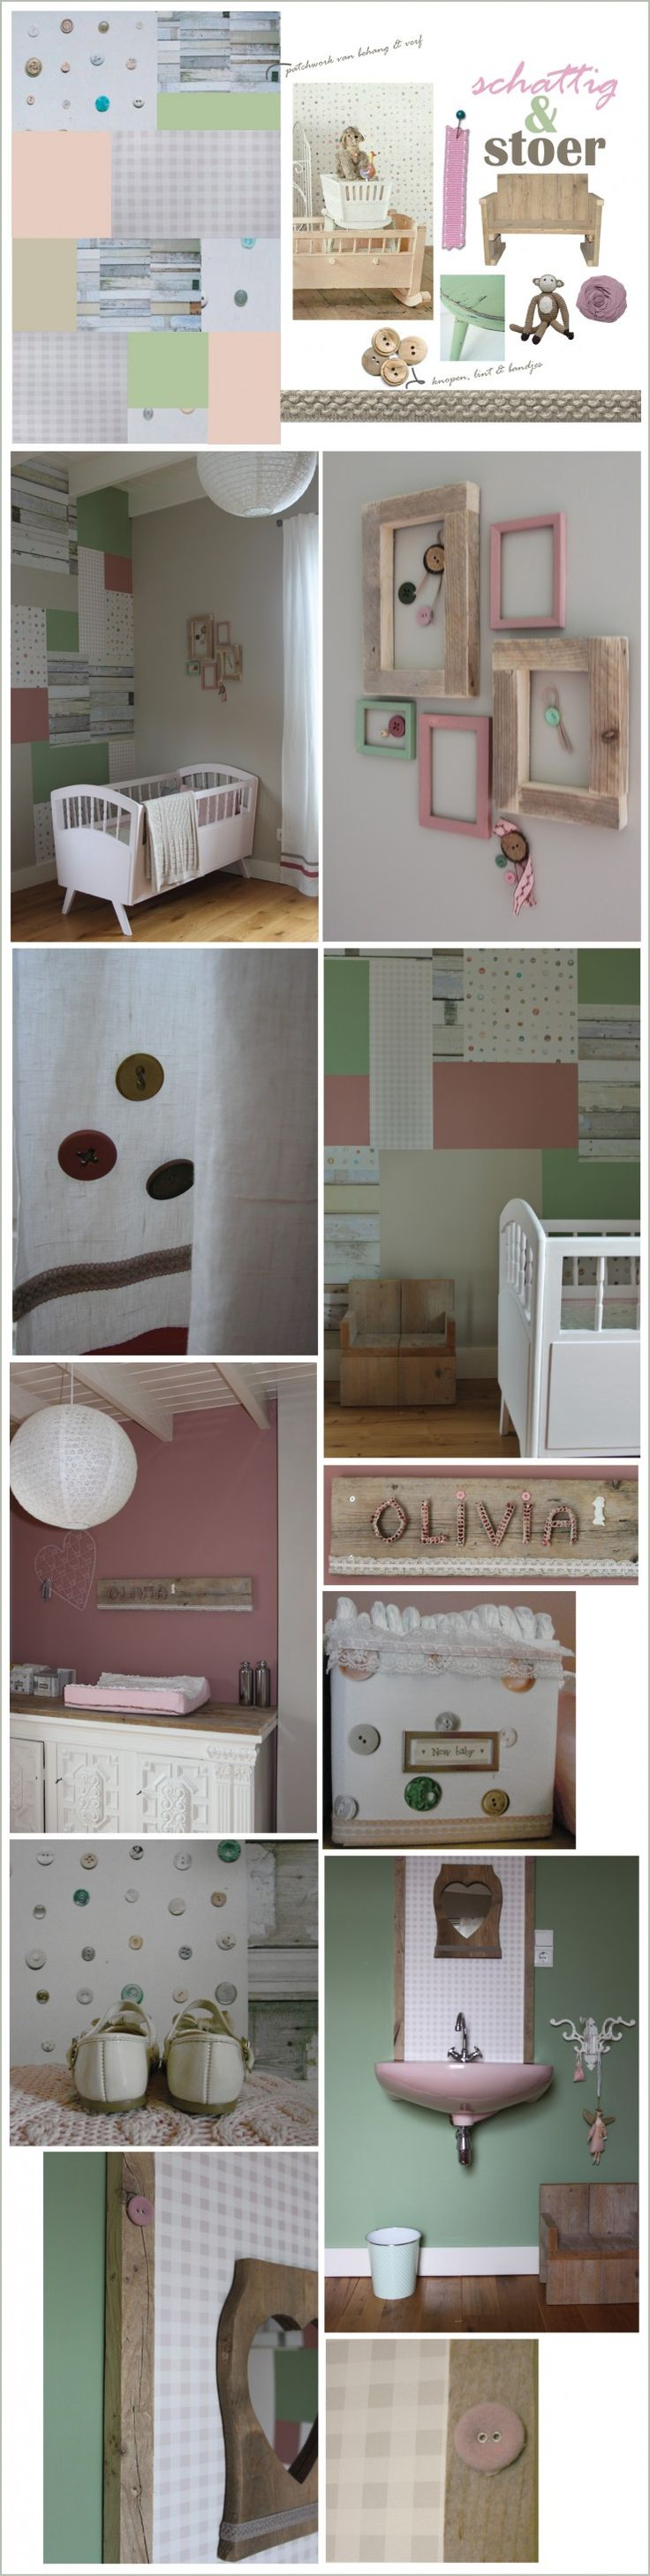 1000+ images about Kinderkamer on Pinterest